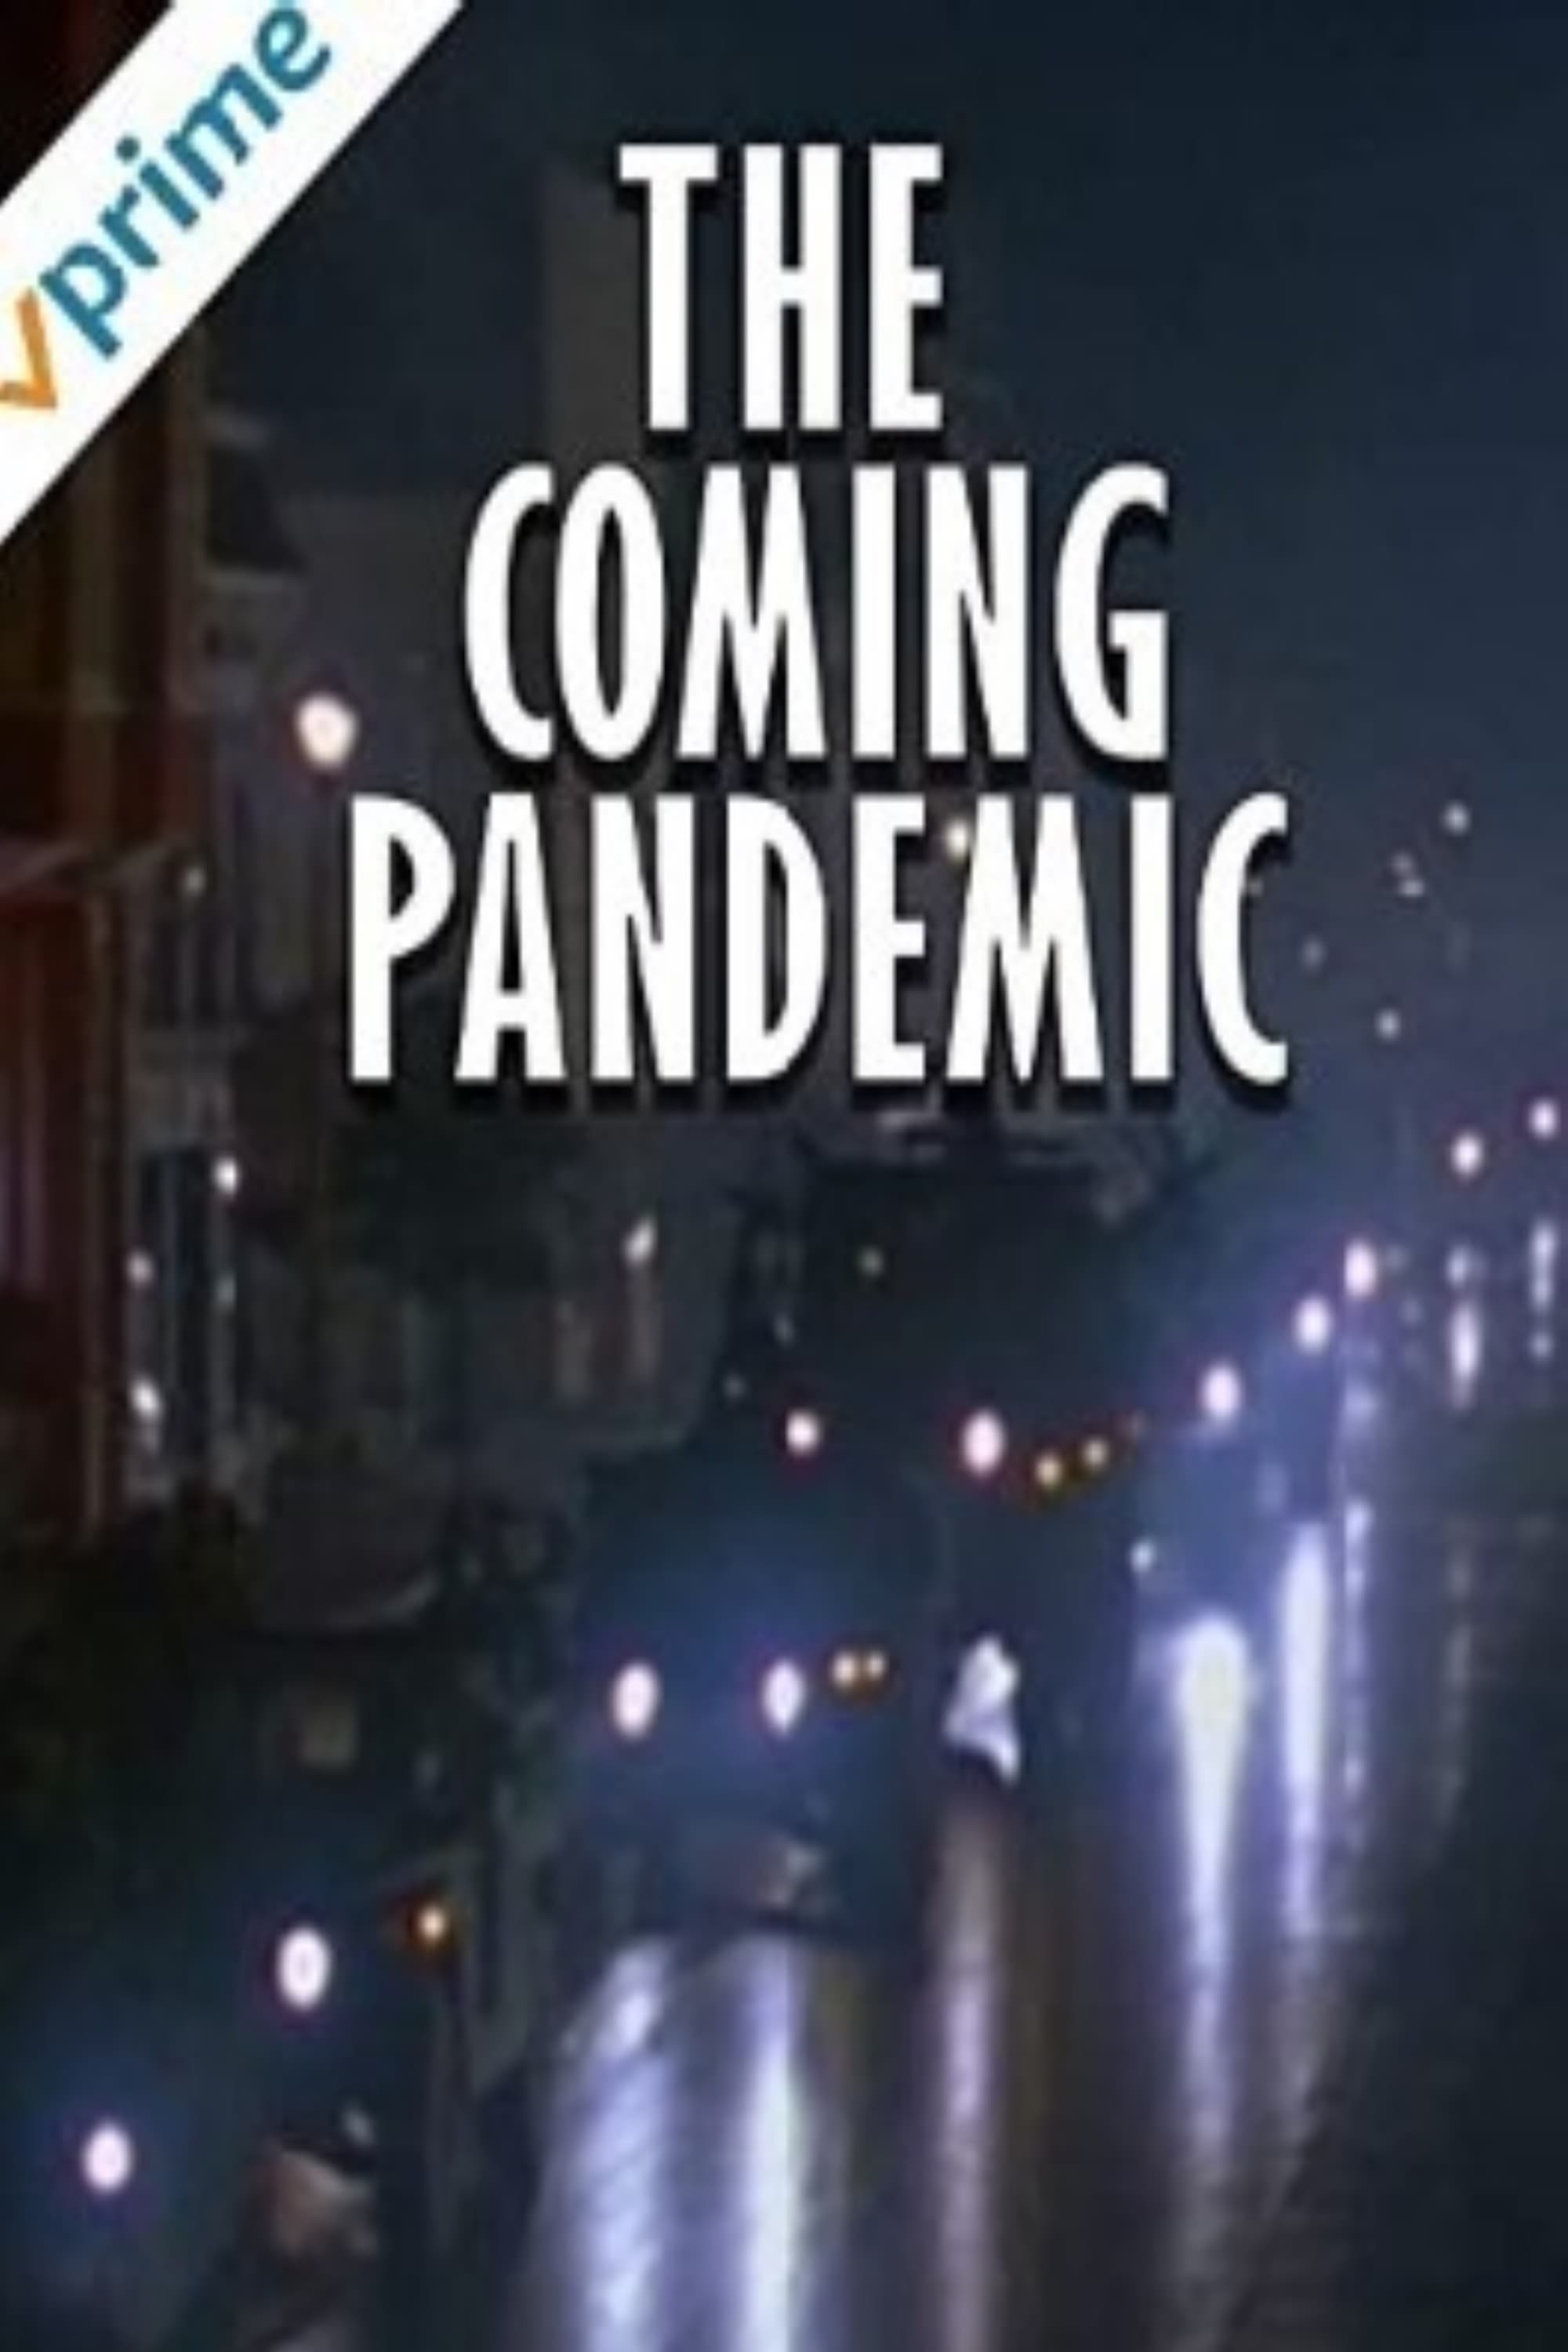 The Coming Pandemic (1970)